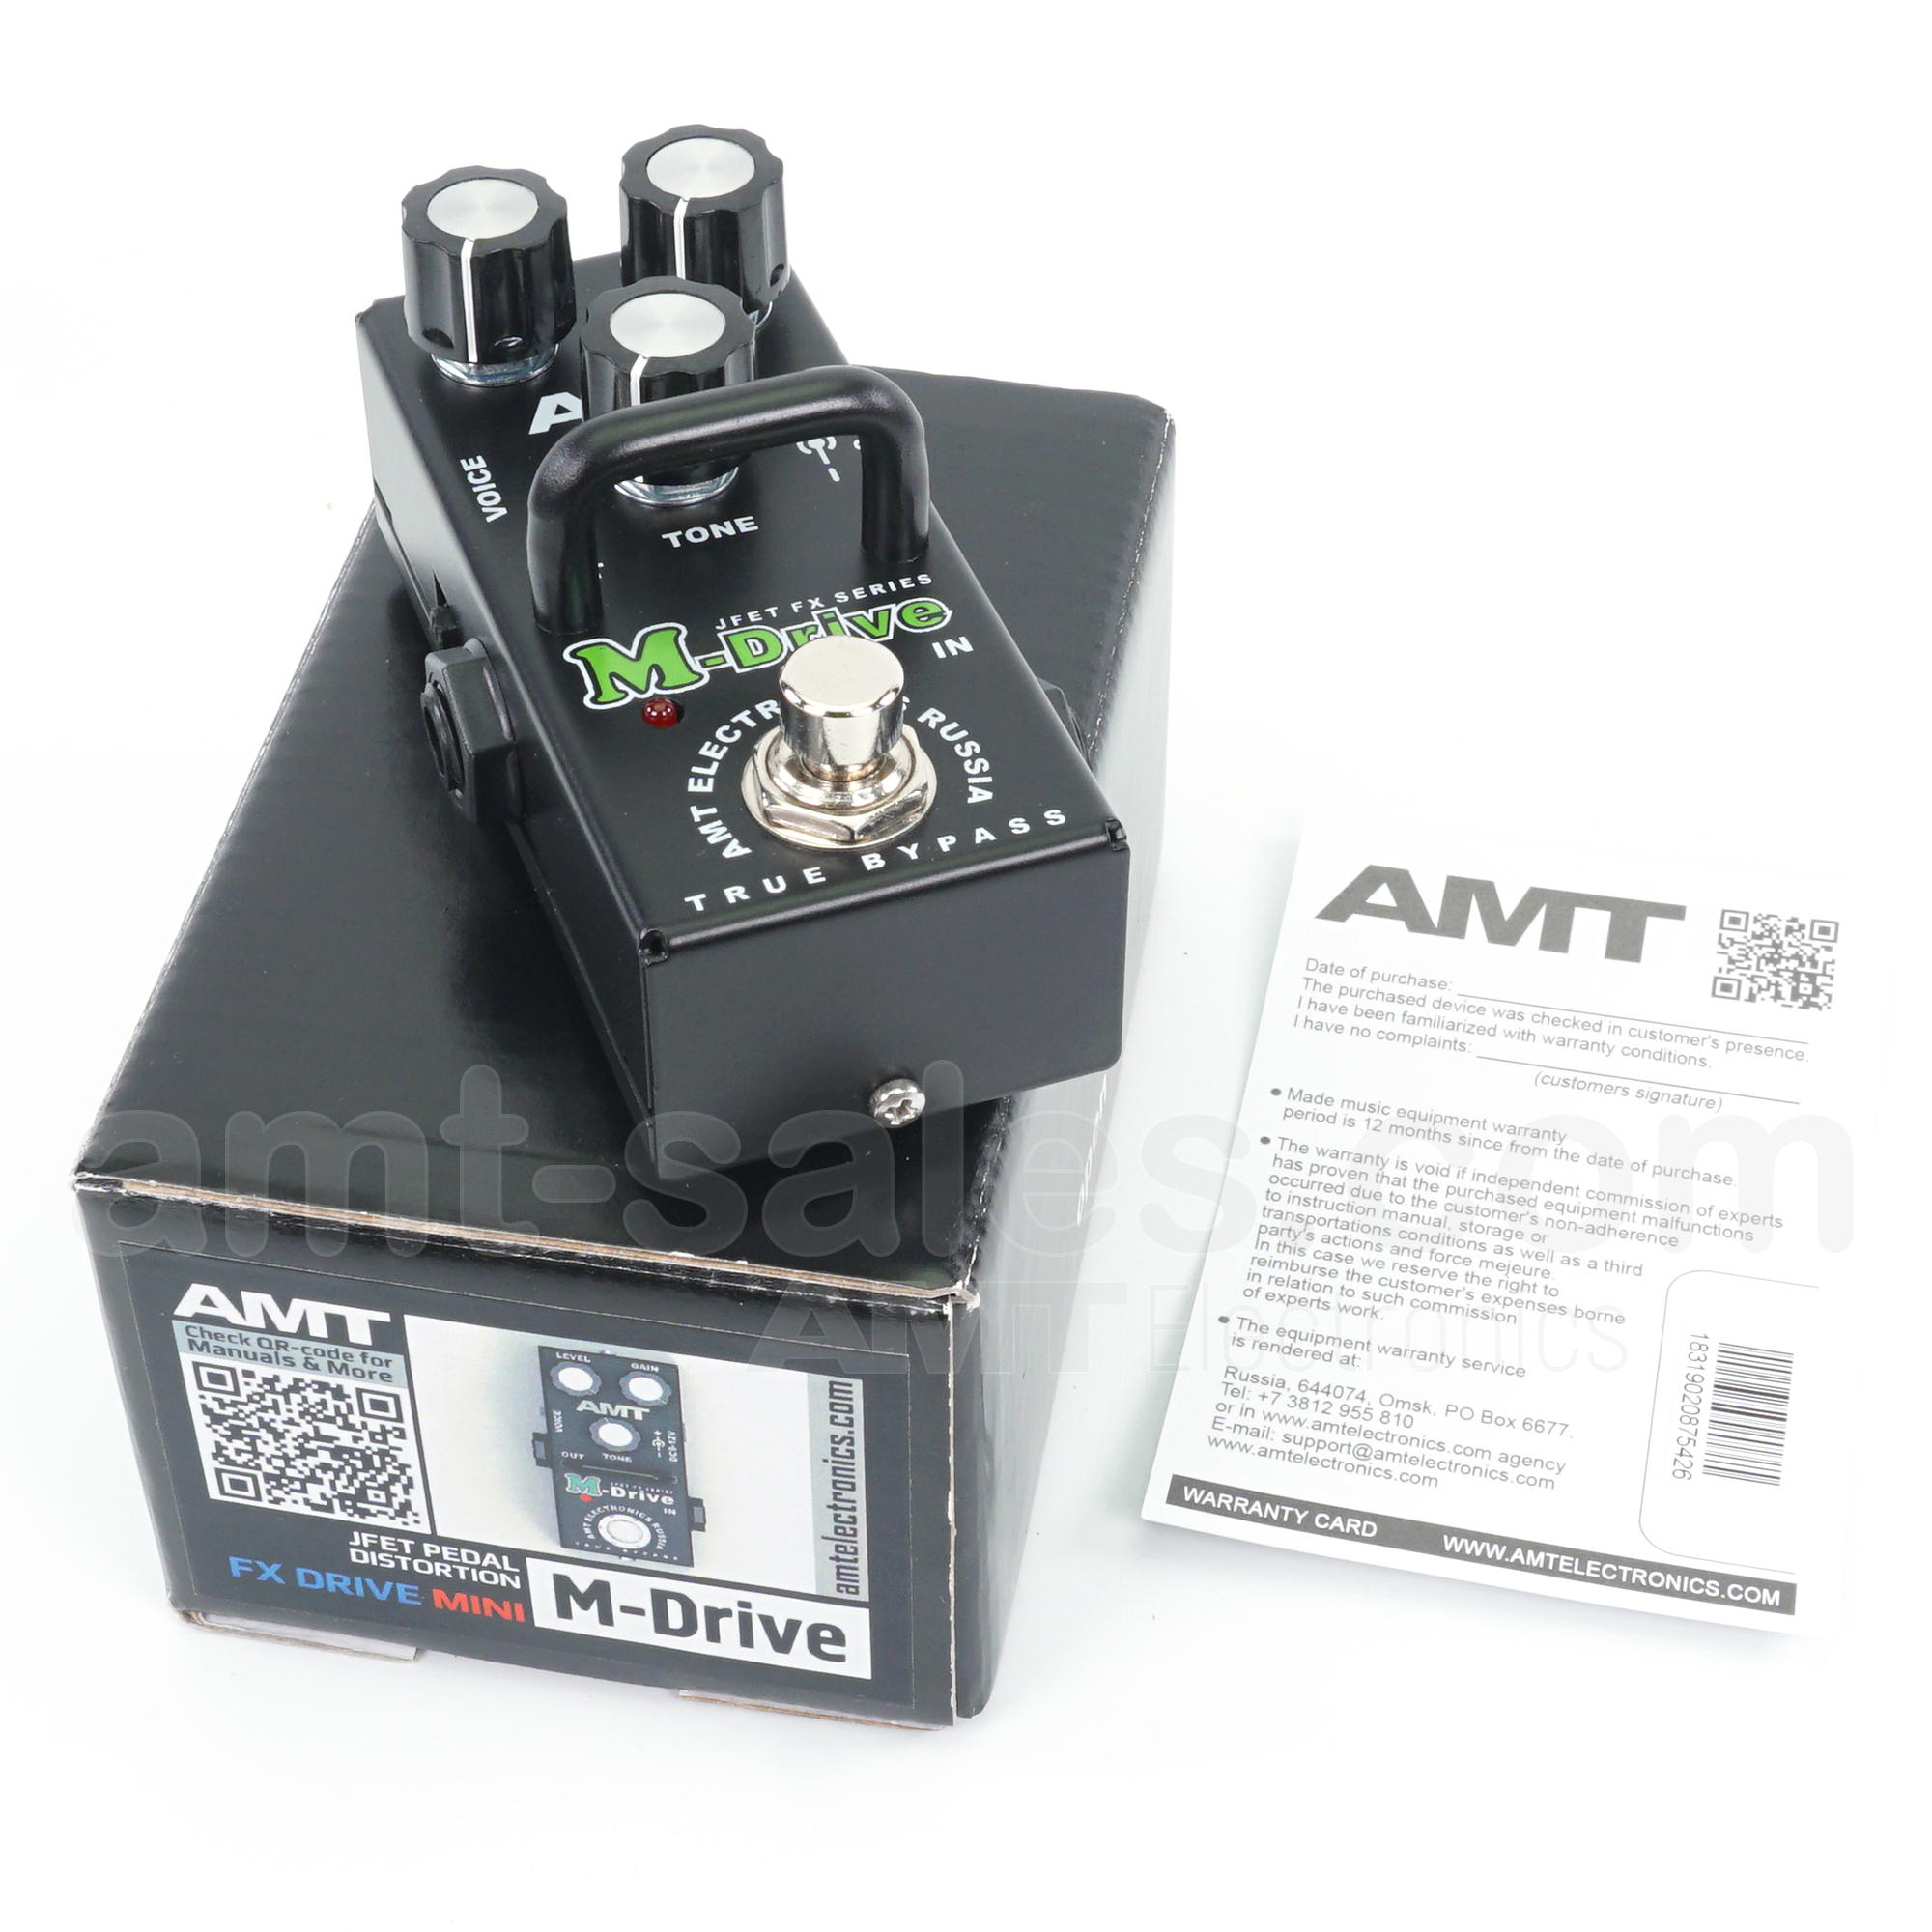 AMT M-Drive mini - JFET distortion pedal